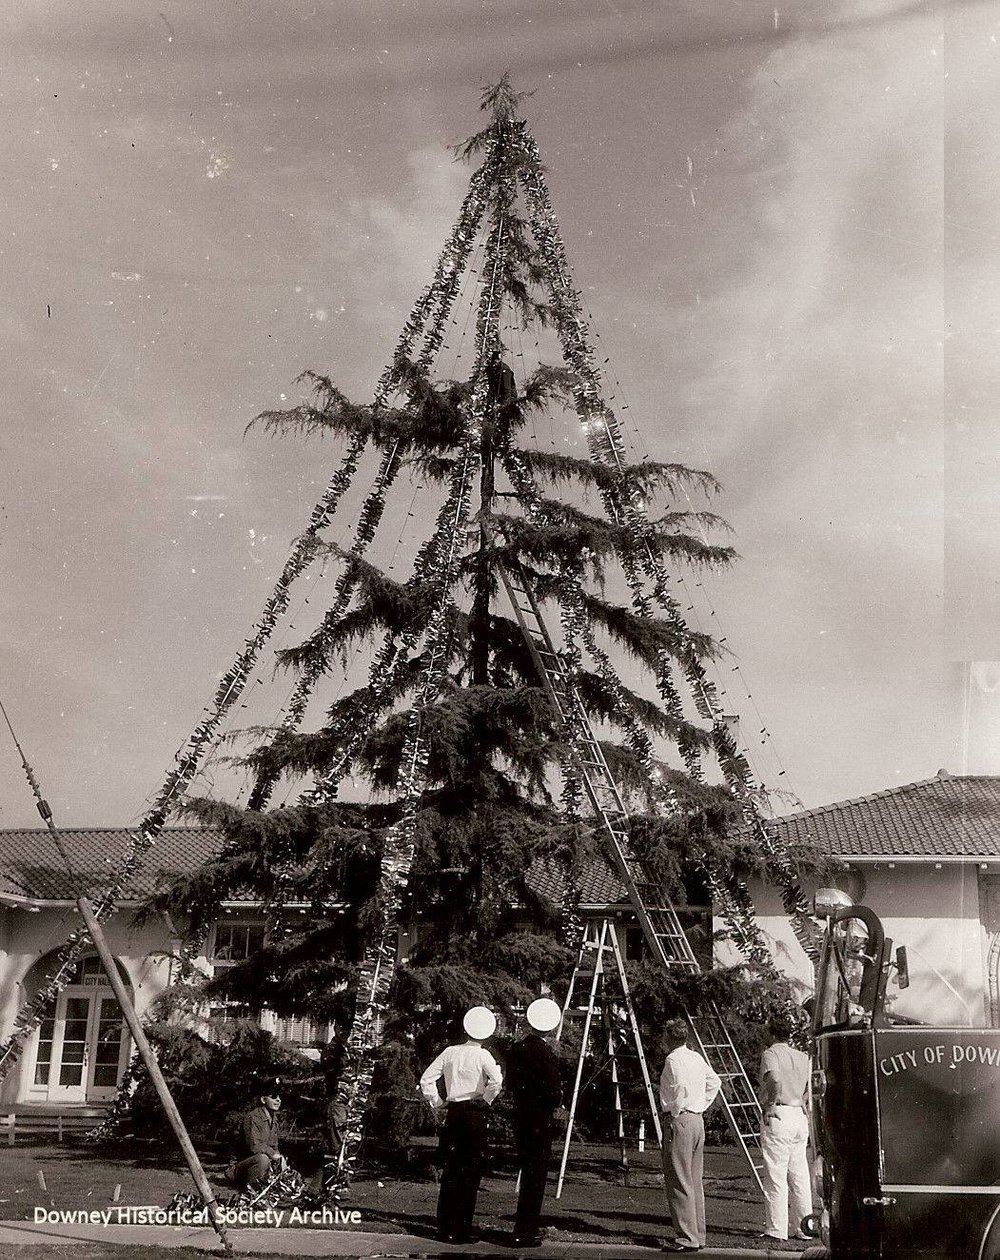 Undated photo of the Christmas tree at the old Downey city hall. Photo courtesy Larry Latimer/Downey Historical Society